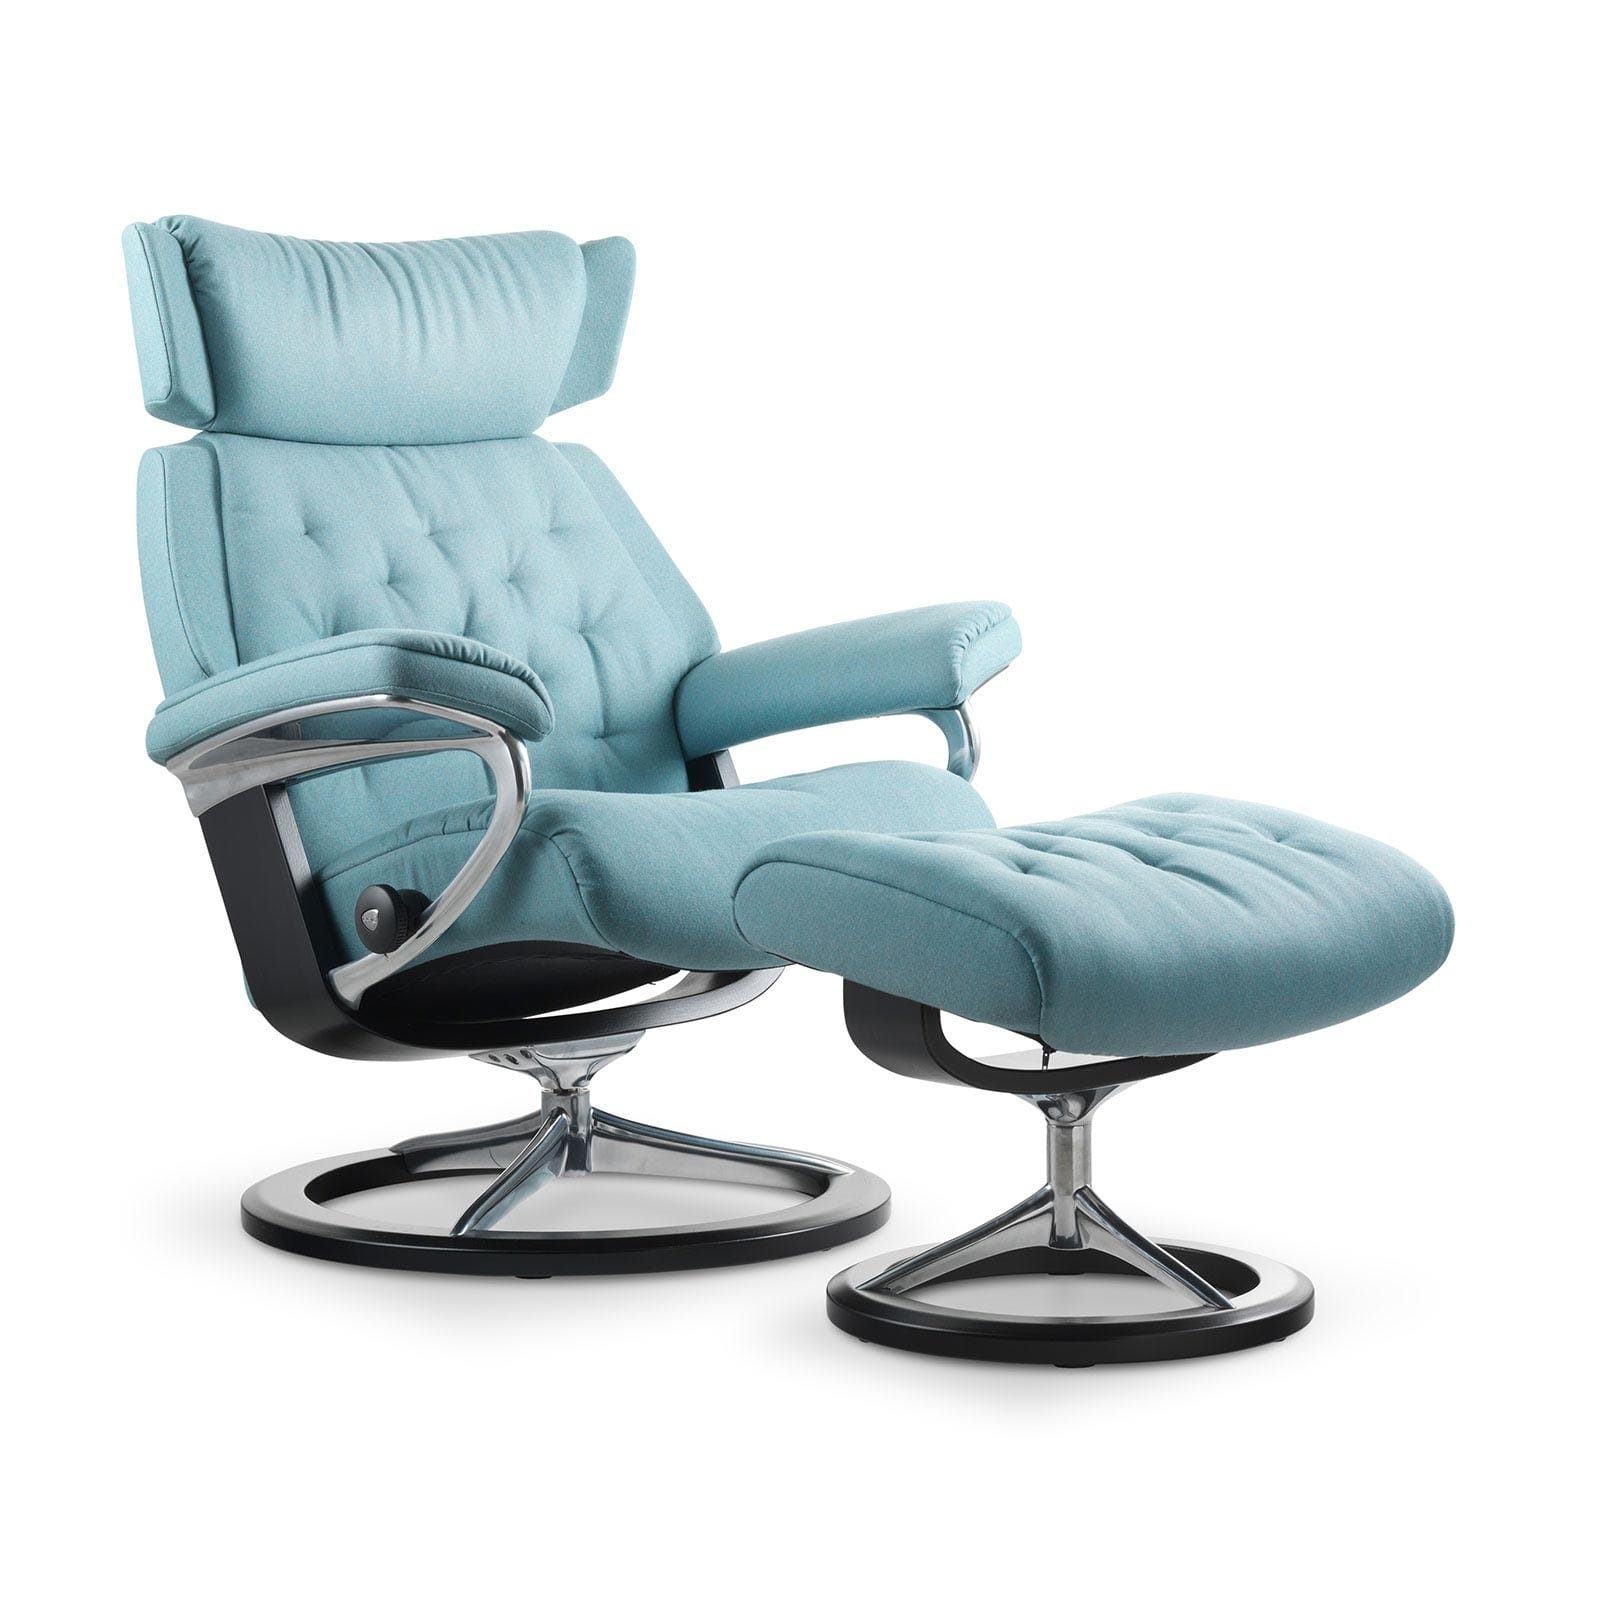 Stressless Skyline Calido Aqua Signature Wenge Mit Hocker